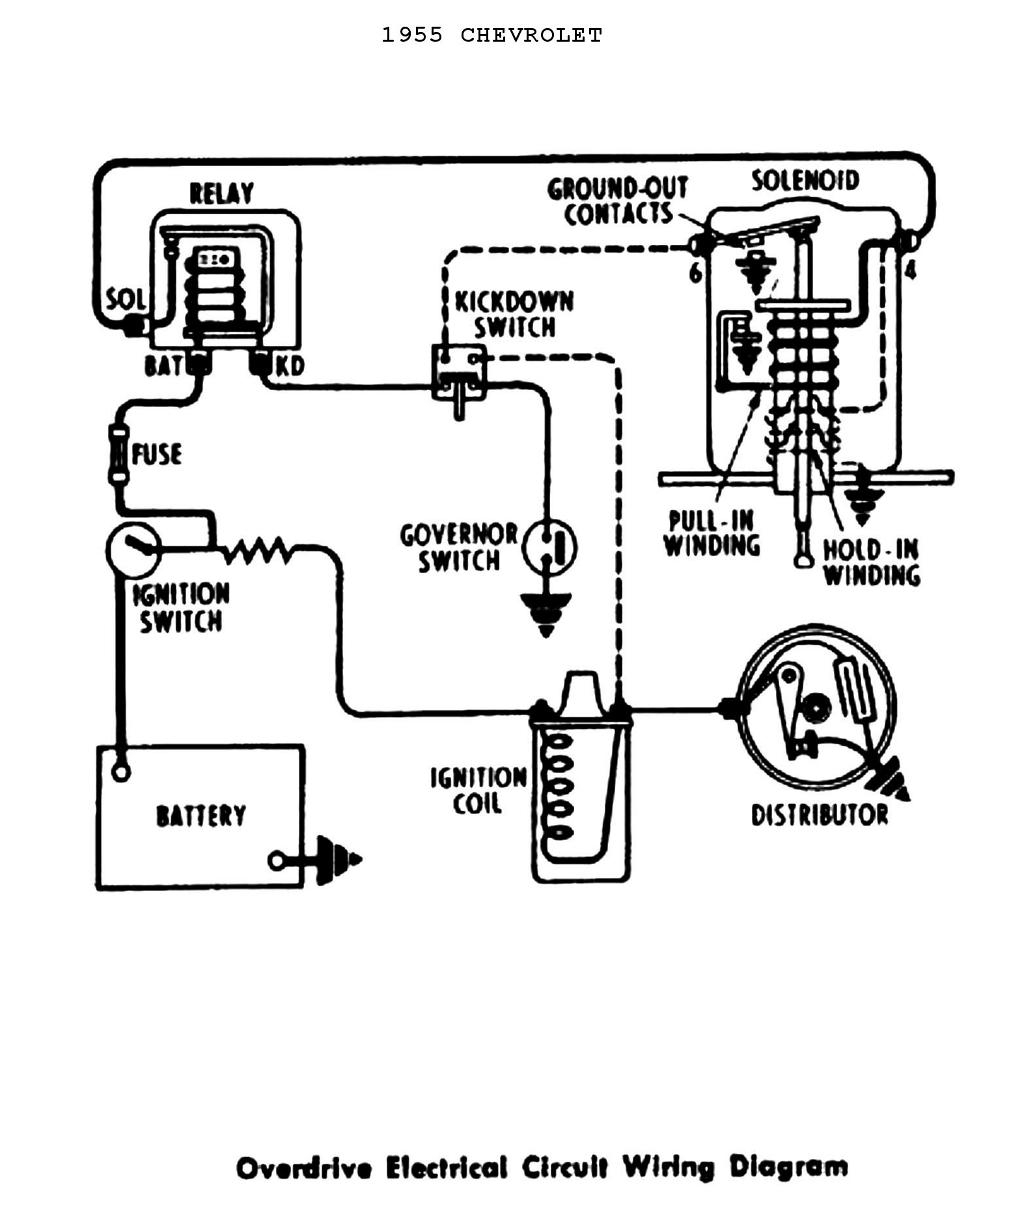 coil wiring diagram utility lighting wiring diagram 277vac lighting gm hei distributor wiring schematic | free wiring diagram